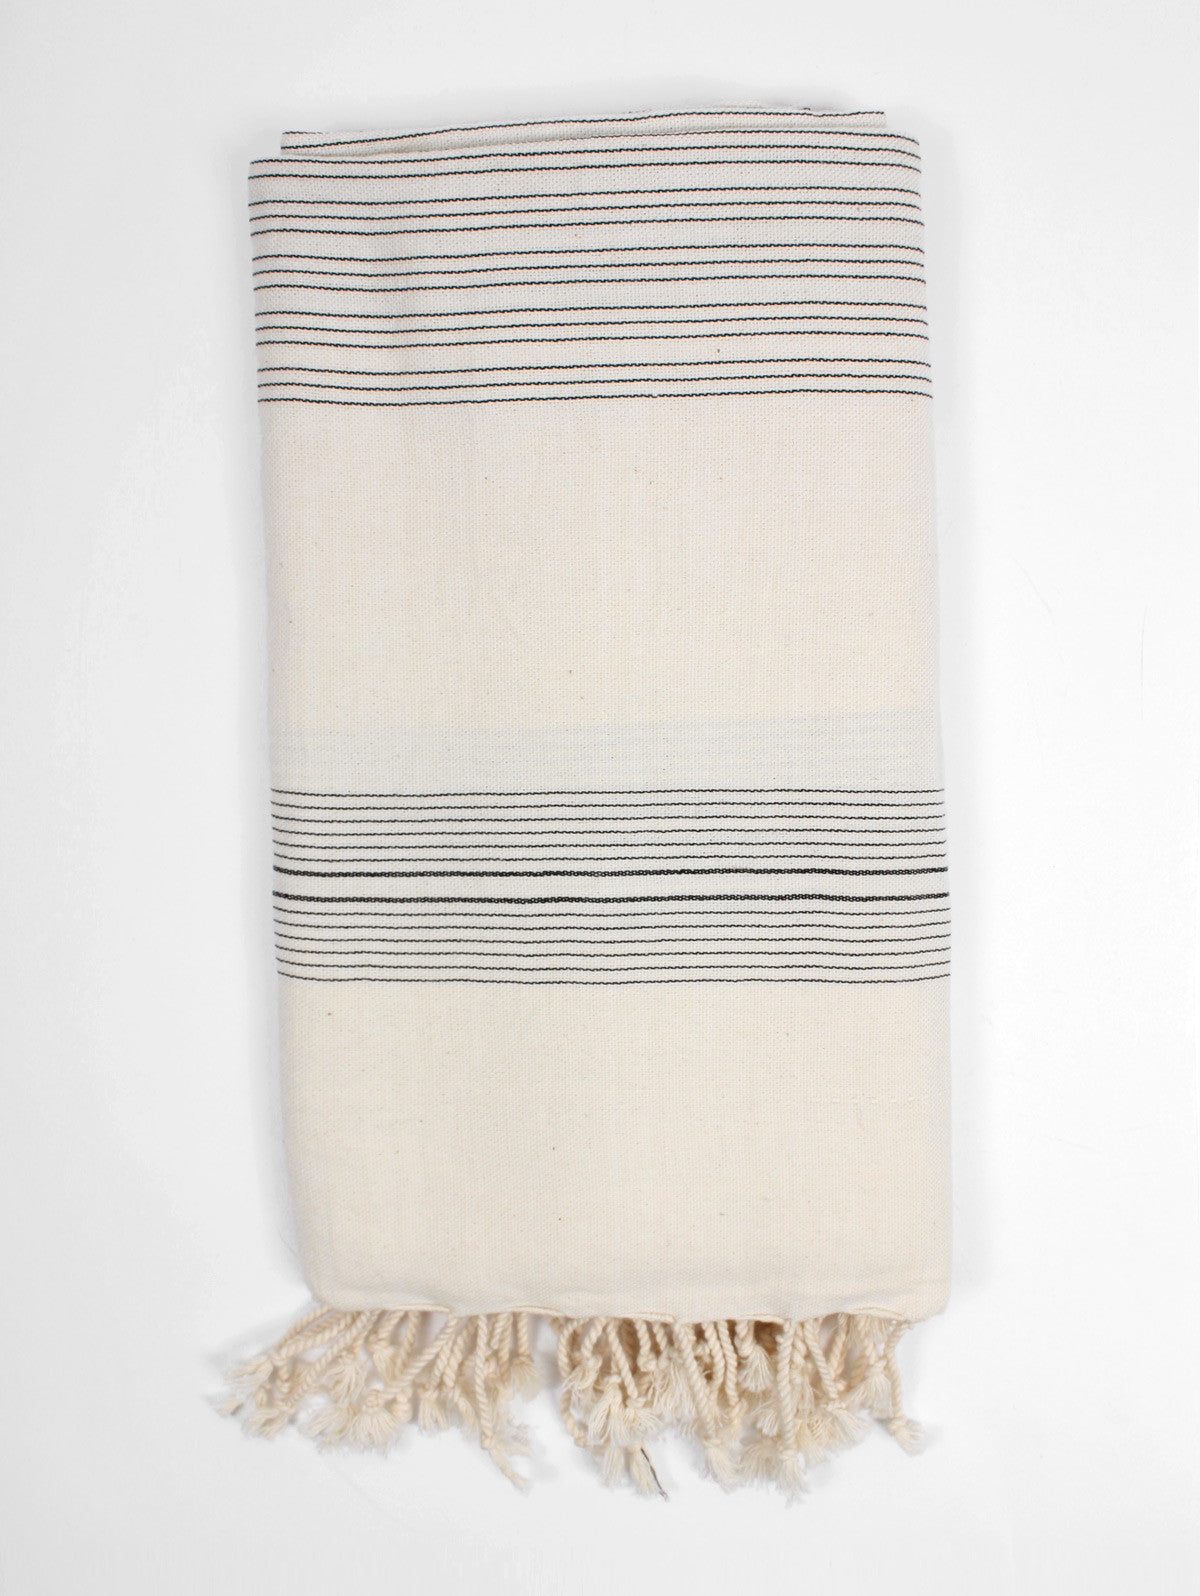 Lamu Hammam Towel, Black